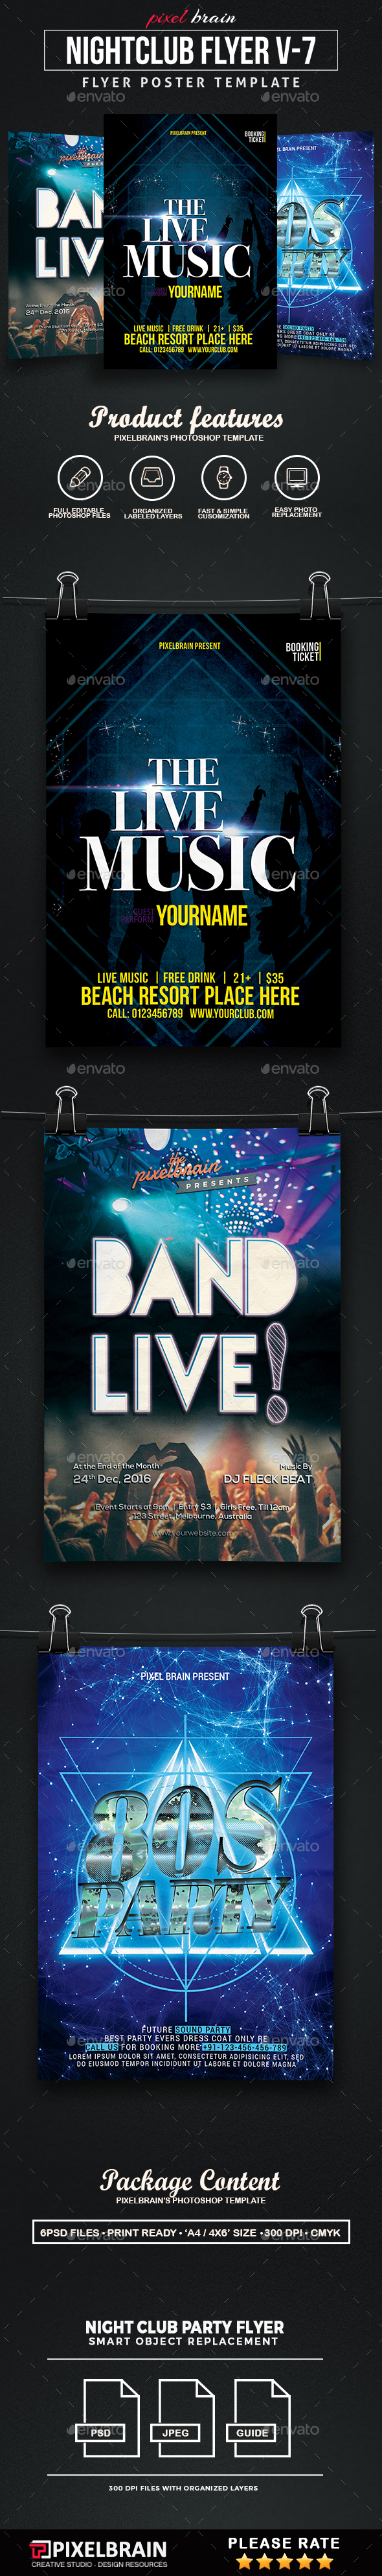 Night Club Party Flyer Template Bundle Vol - 07 - Clubs & Parties Events